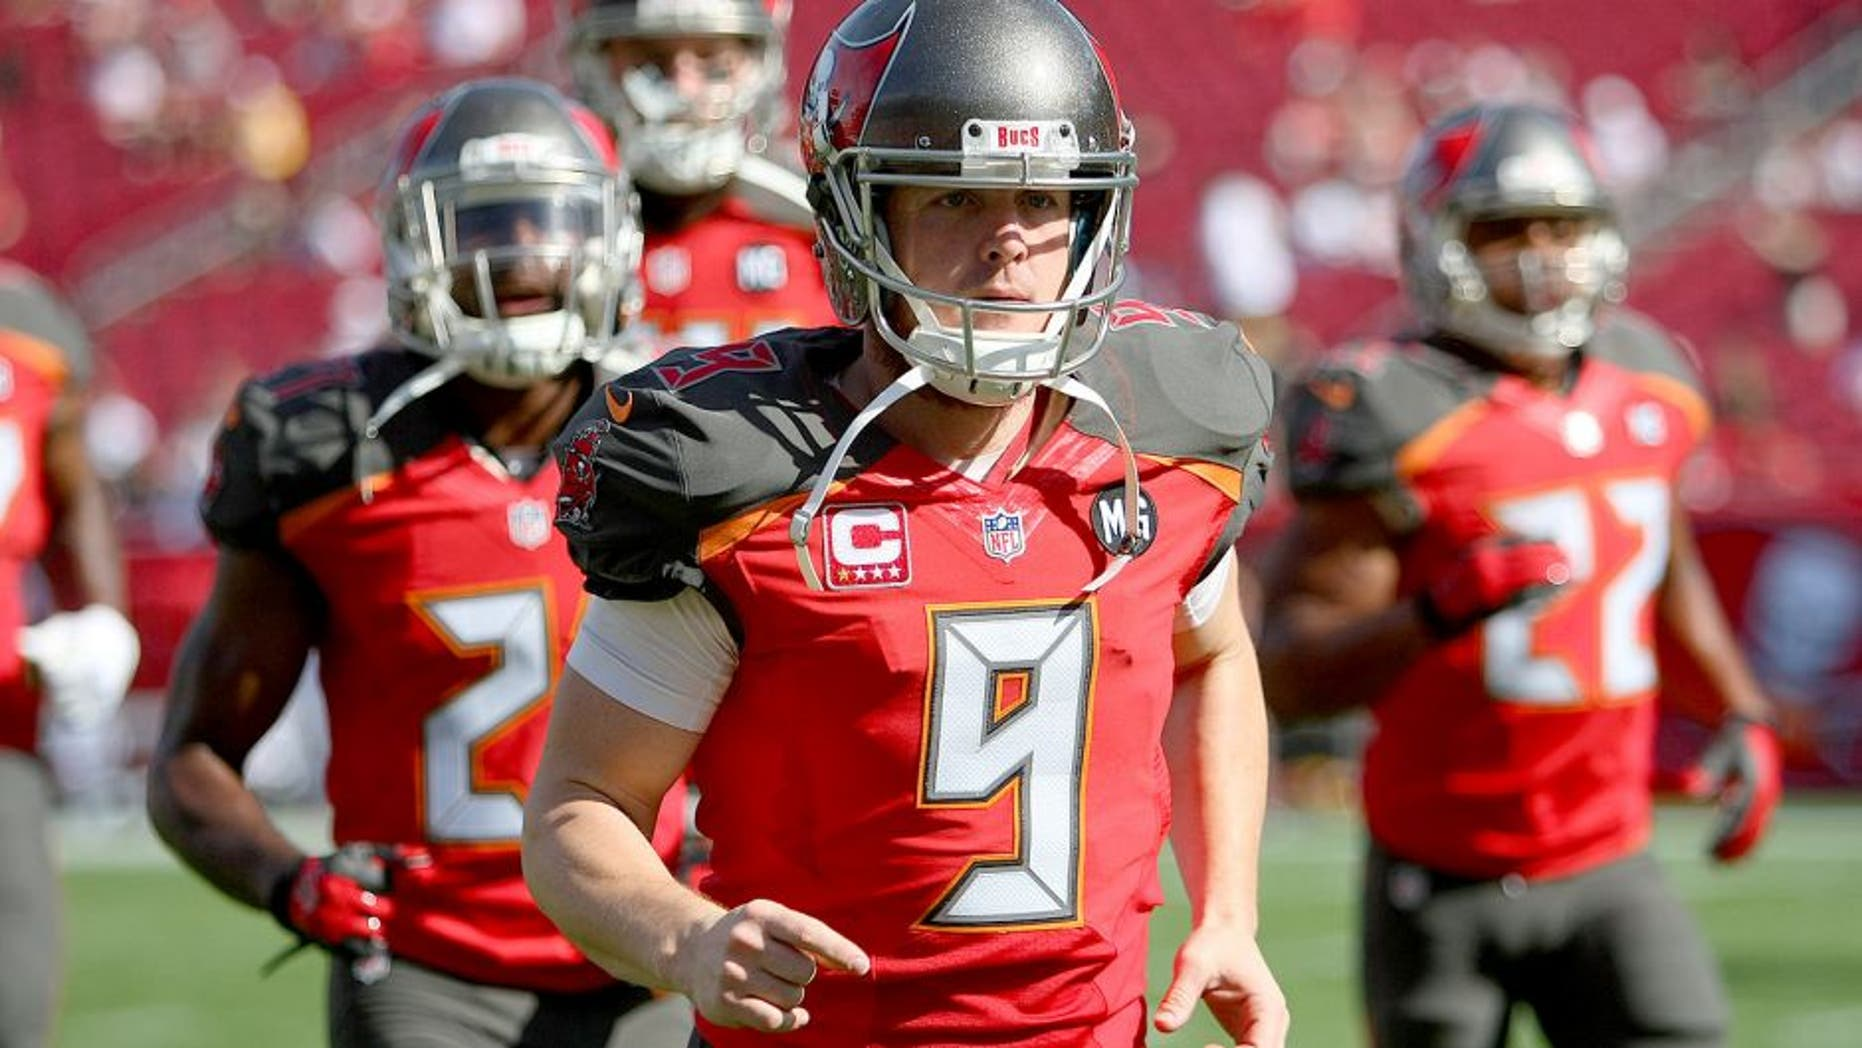 TAMPA, FL - DECEMBER 28: Michael Koenen #9 of the Tampa Bay Buccaneers is seen as he runs onto the field during an NFL football game against the New Orleans Saints at Raymond James Stadium on December 28, 2014 in Tampa, Florida. (Photo by Alex Menendez/Getty Images)